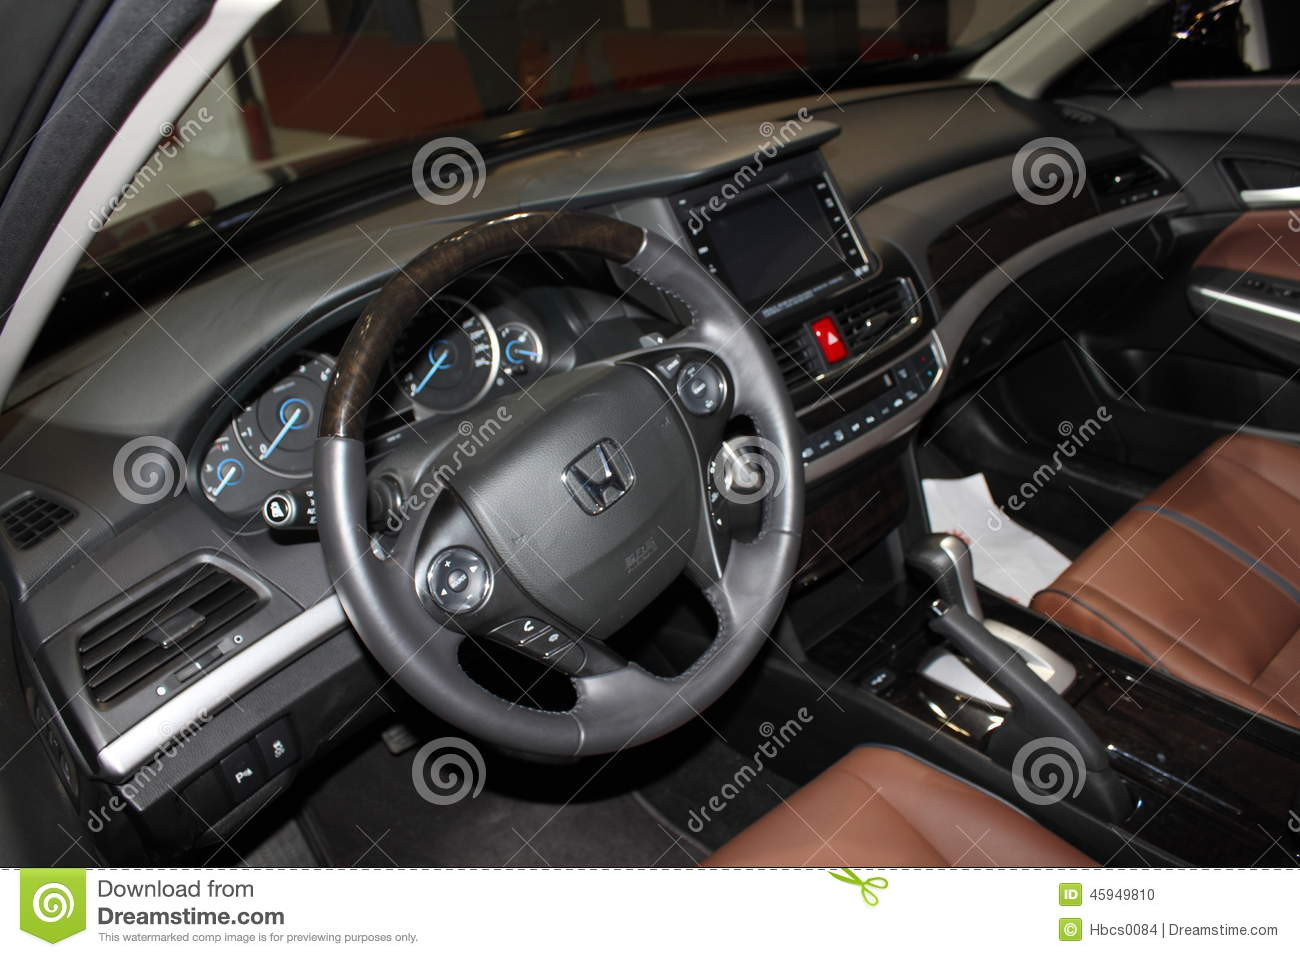 honda interior crosstour and review redesign release images front hd engine details